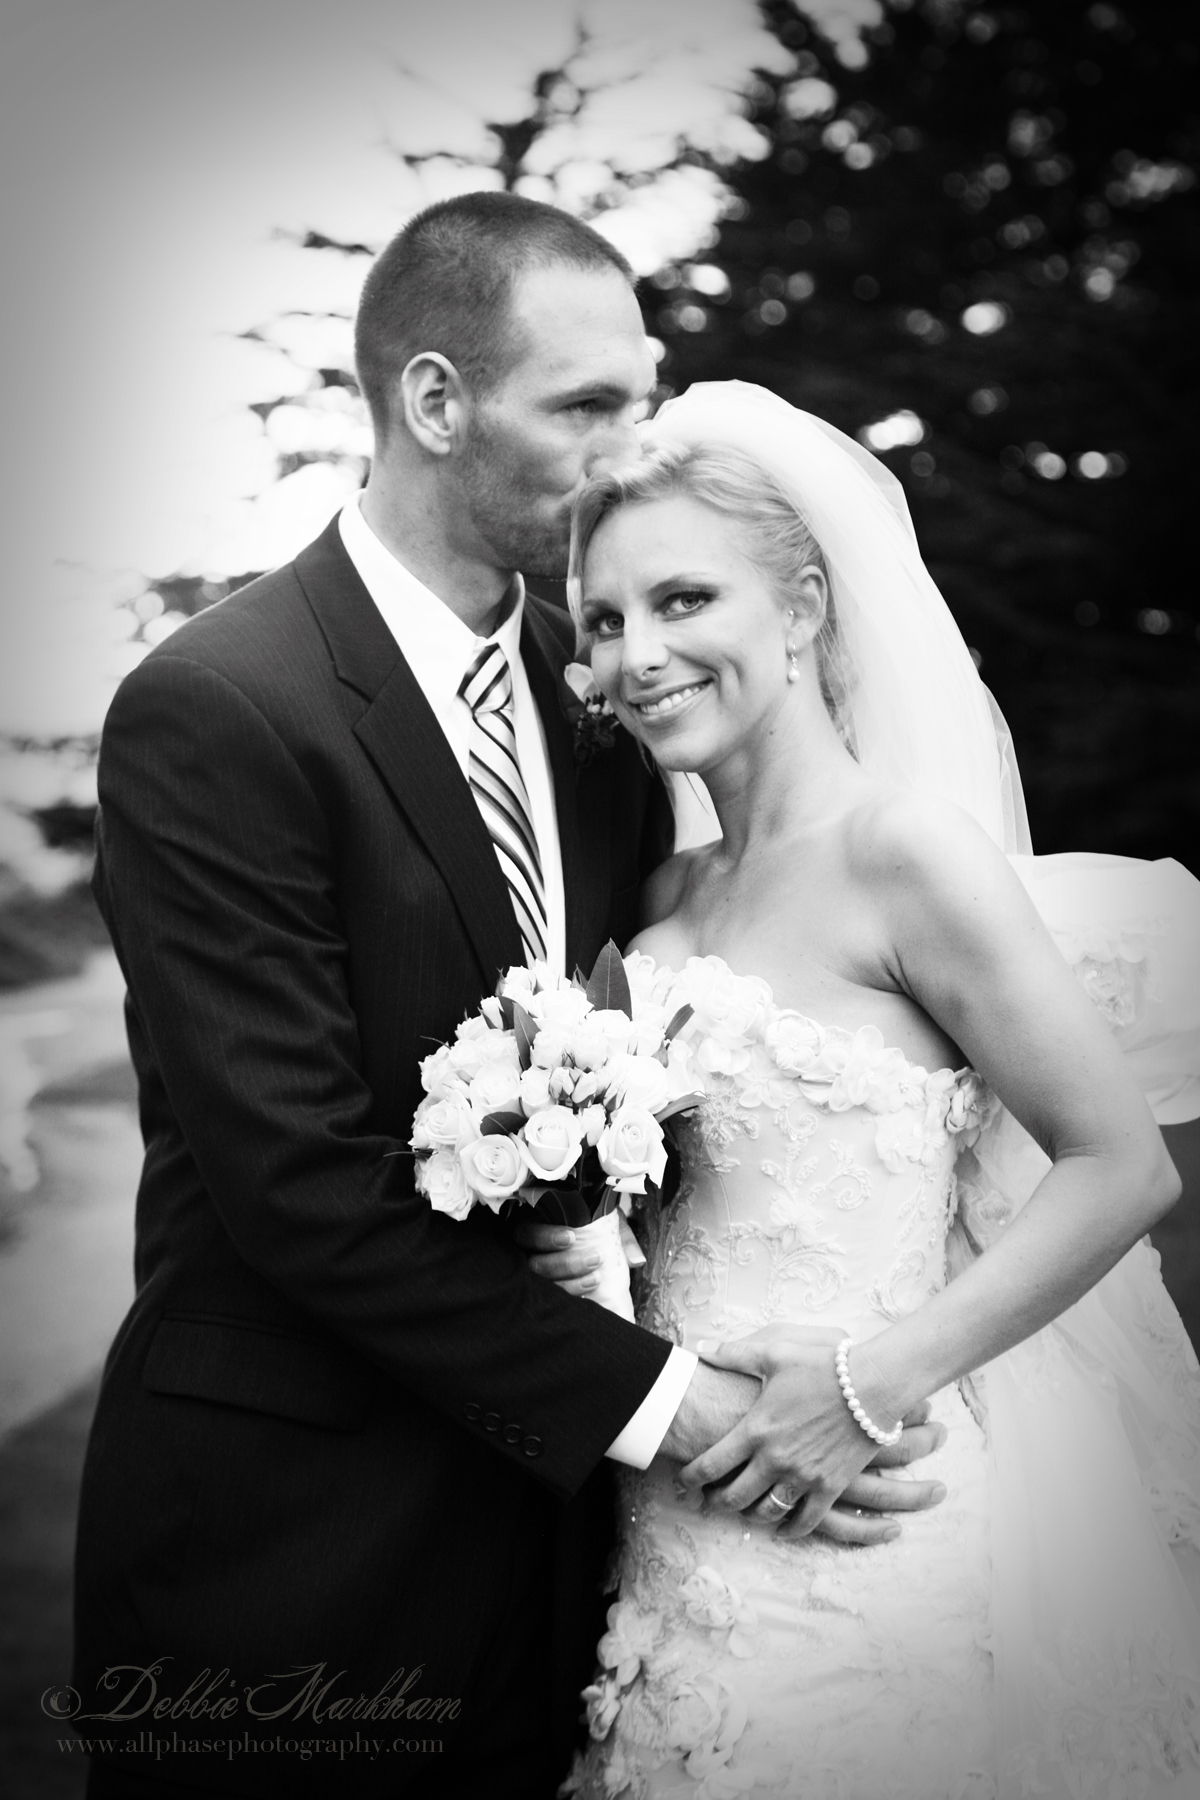 Beautiful Cloudy Day Wedding at Ragged Point Inn-Bride and Groom black and white-email size